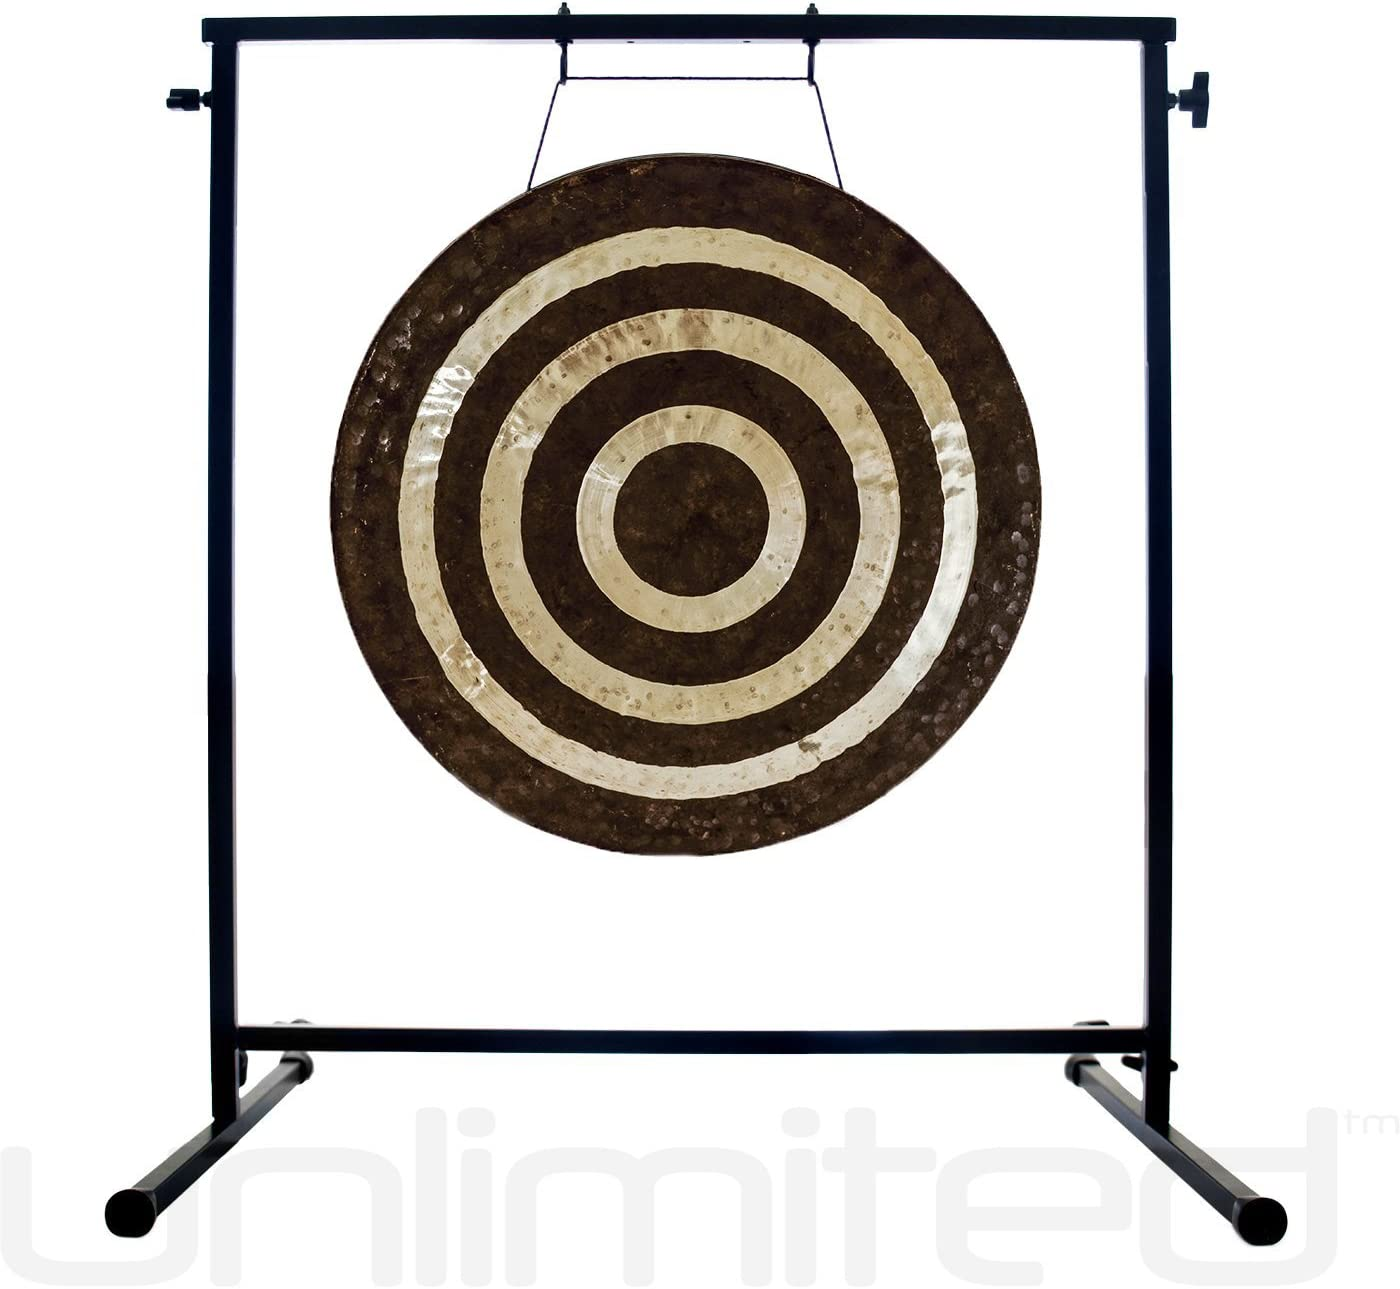 "20"" to 26"" Gongs on the Fruity Buddha Gong Stand 71Bv7FAkpOL"